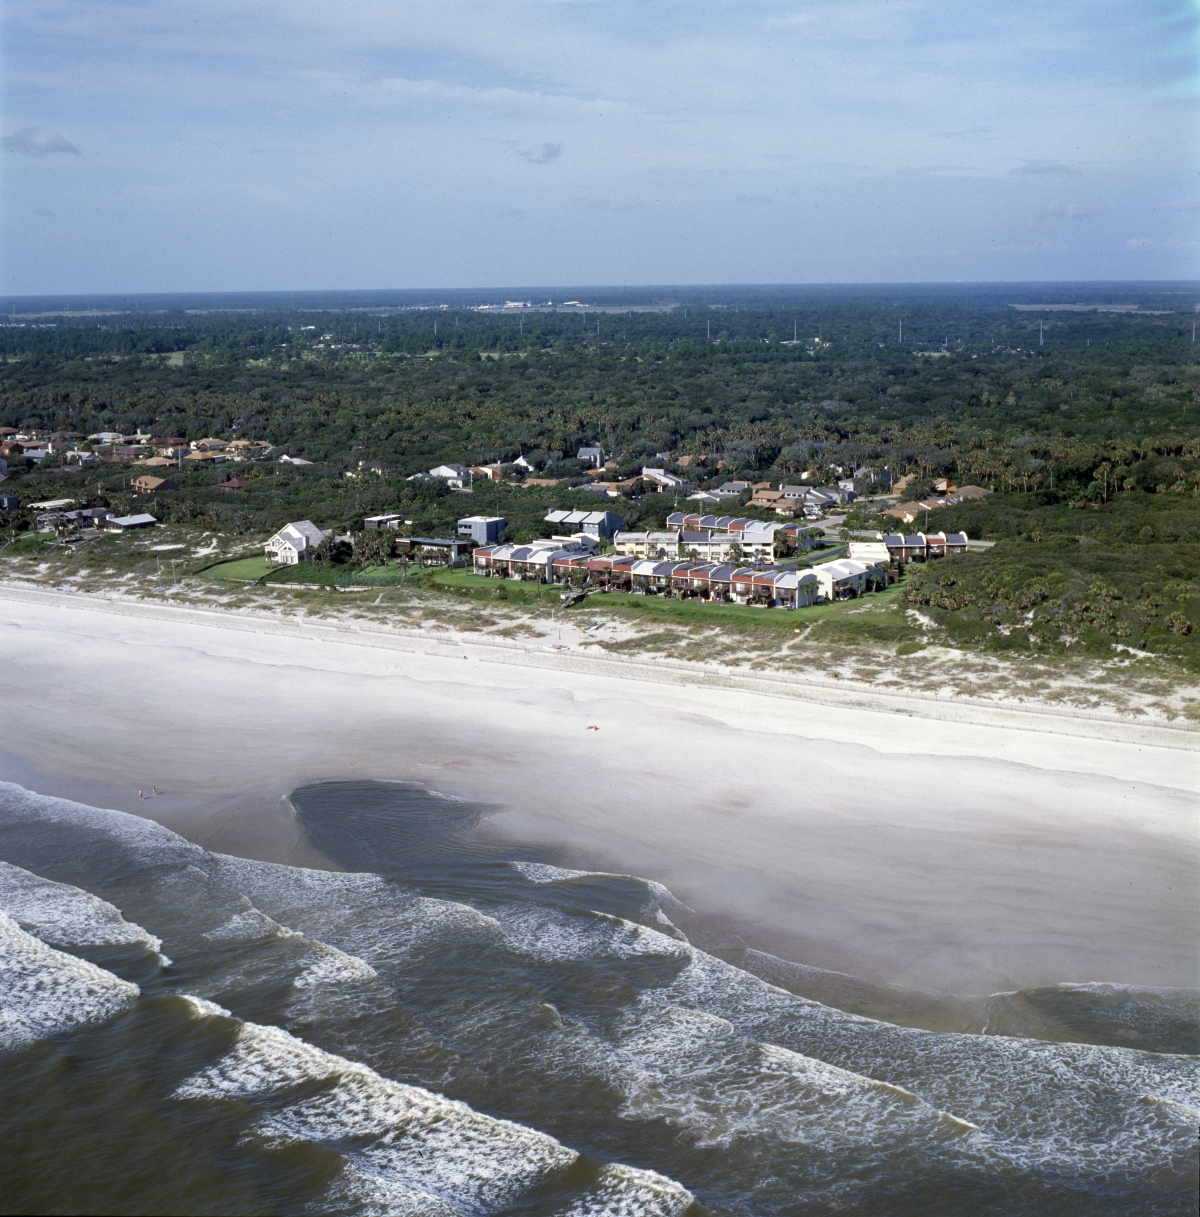 Aerial view looking west at the Ocean Village condominiums in Atlantic Beach.